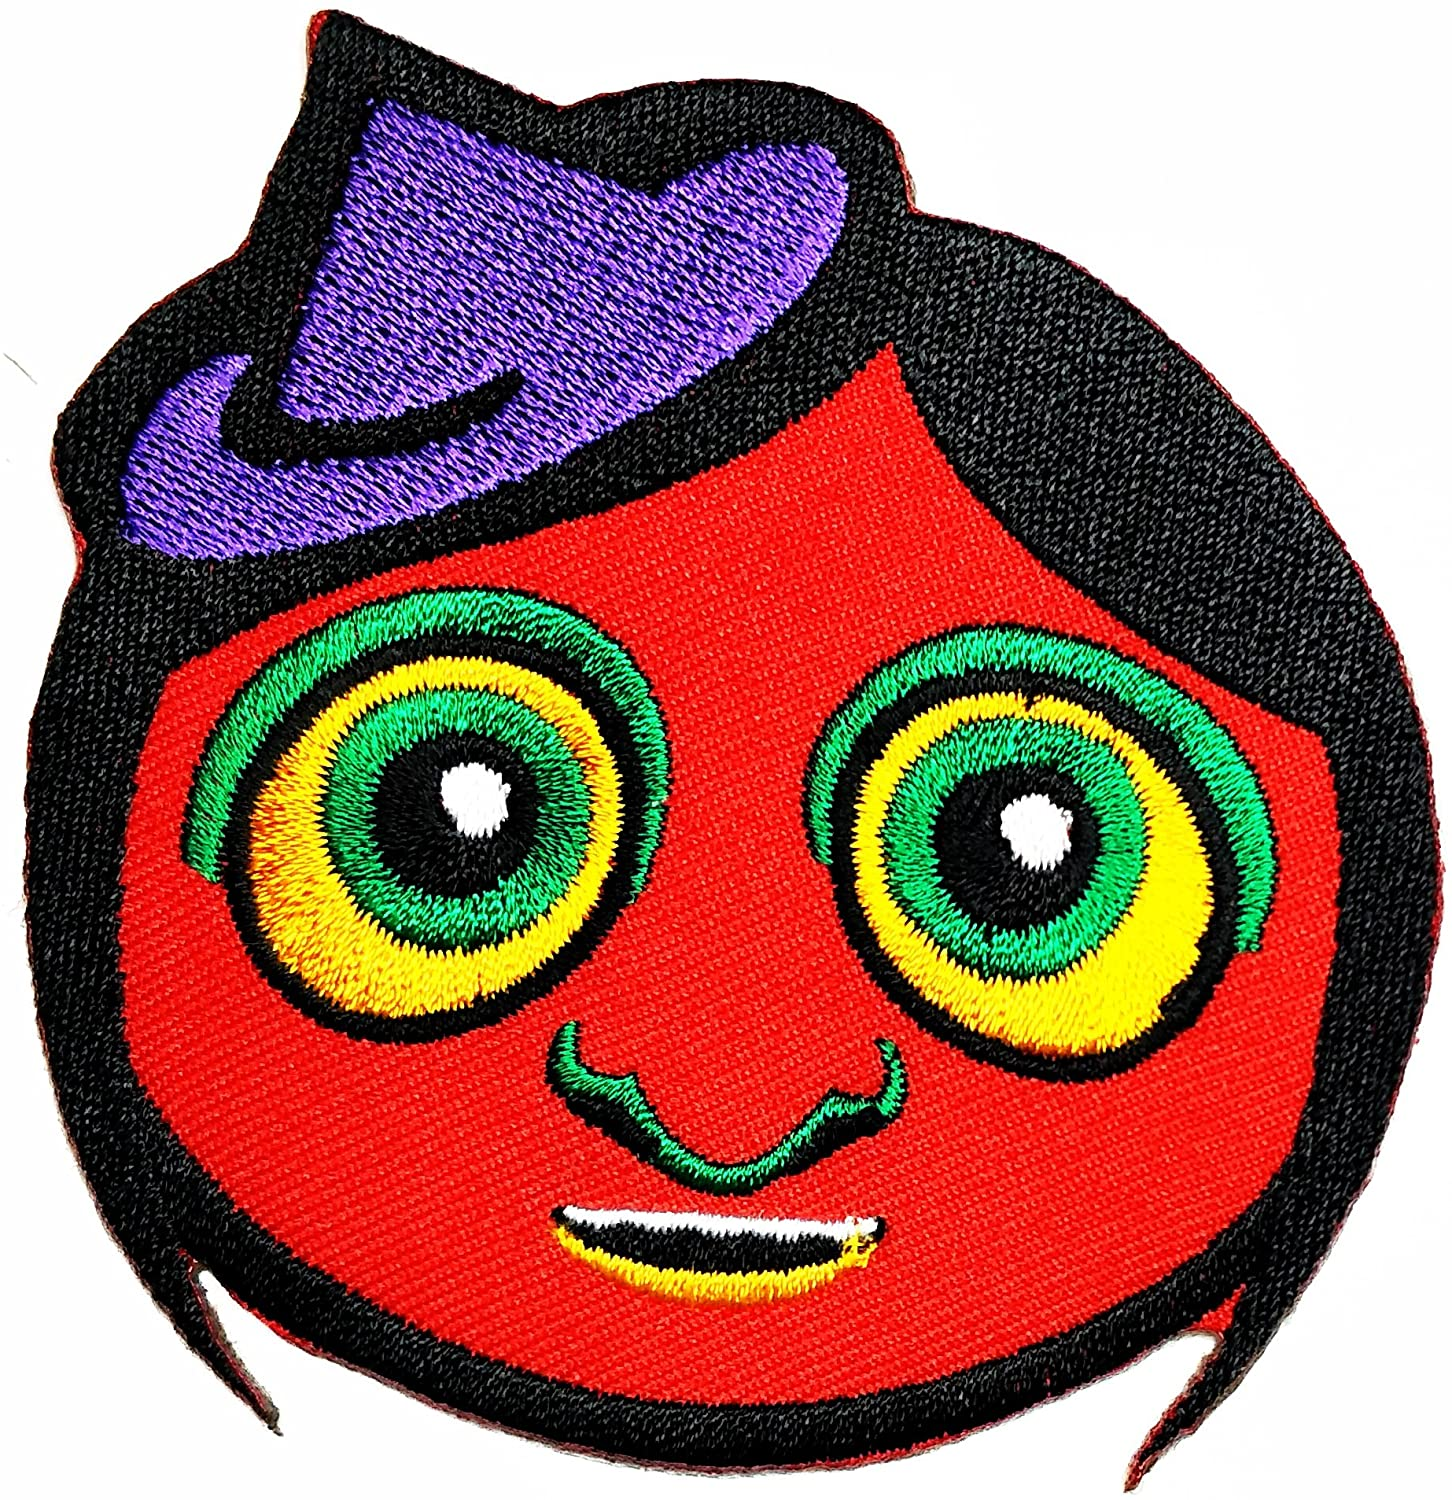 HHO Girl Head Red with hat cute Cartoon kids patch Embroidered DIY Patches, Cute Applique Sew Iron on Kids Craft Patch for Bags Jackets Jeans Clothes